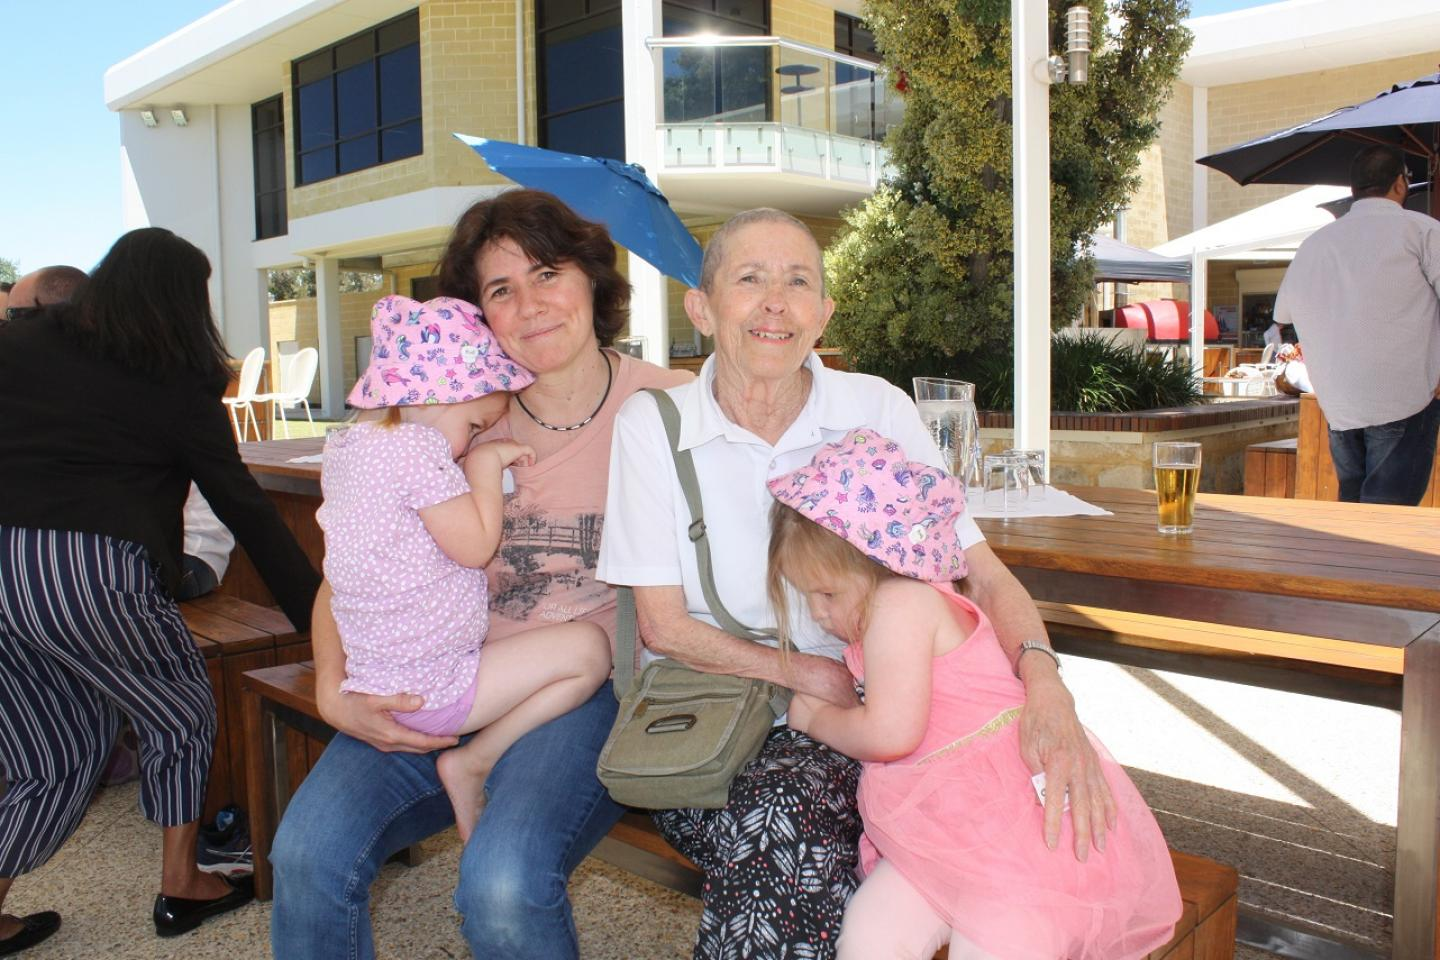 Ausplow engineering manager Carol Erasmus (left) and her mother Melody were kept busy with Carol's daughters Aria (left) and Carley, who didn't want their photograph taken.